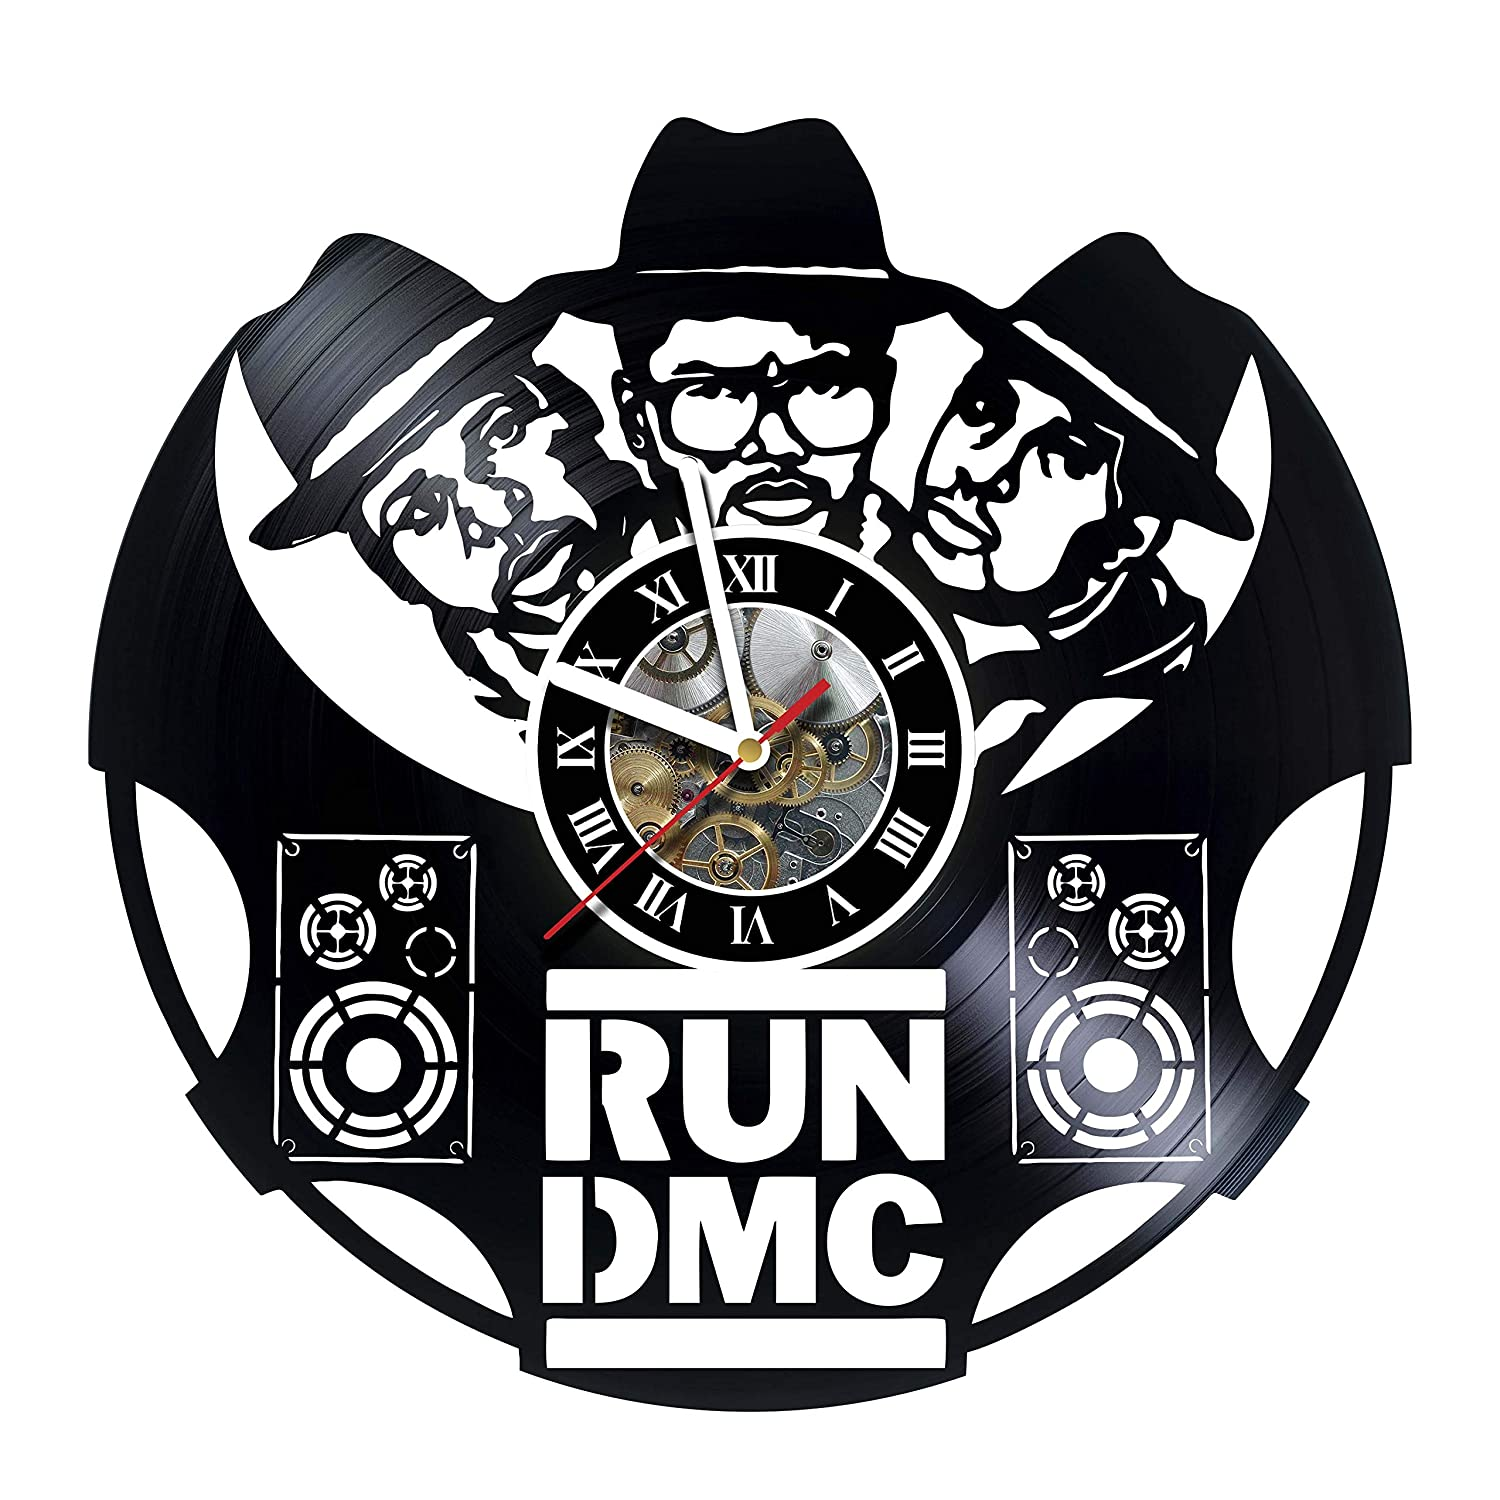 Amazon com: Run DMC - Vinyl Record Wall Clock - Unique Home